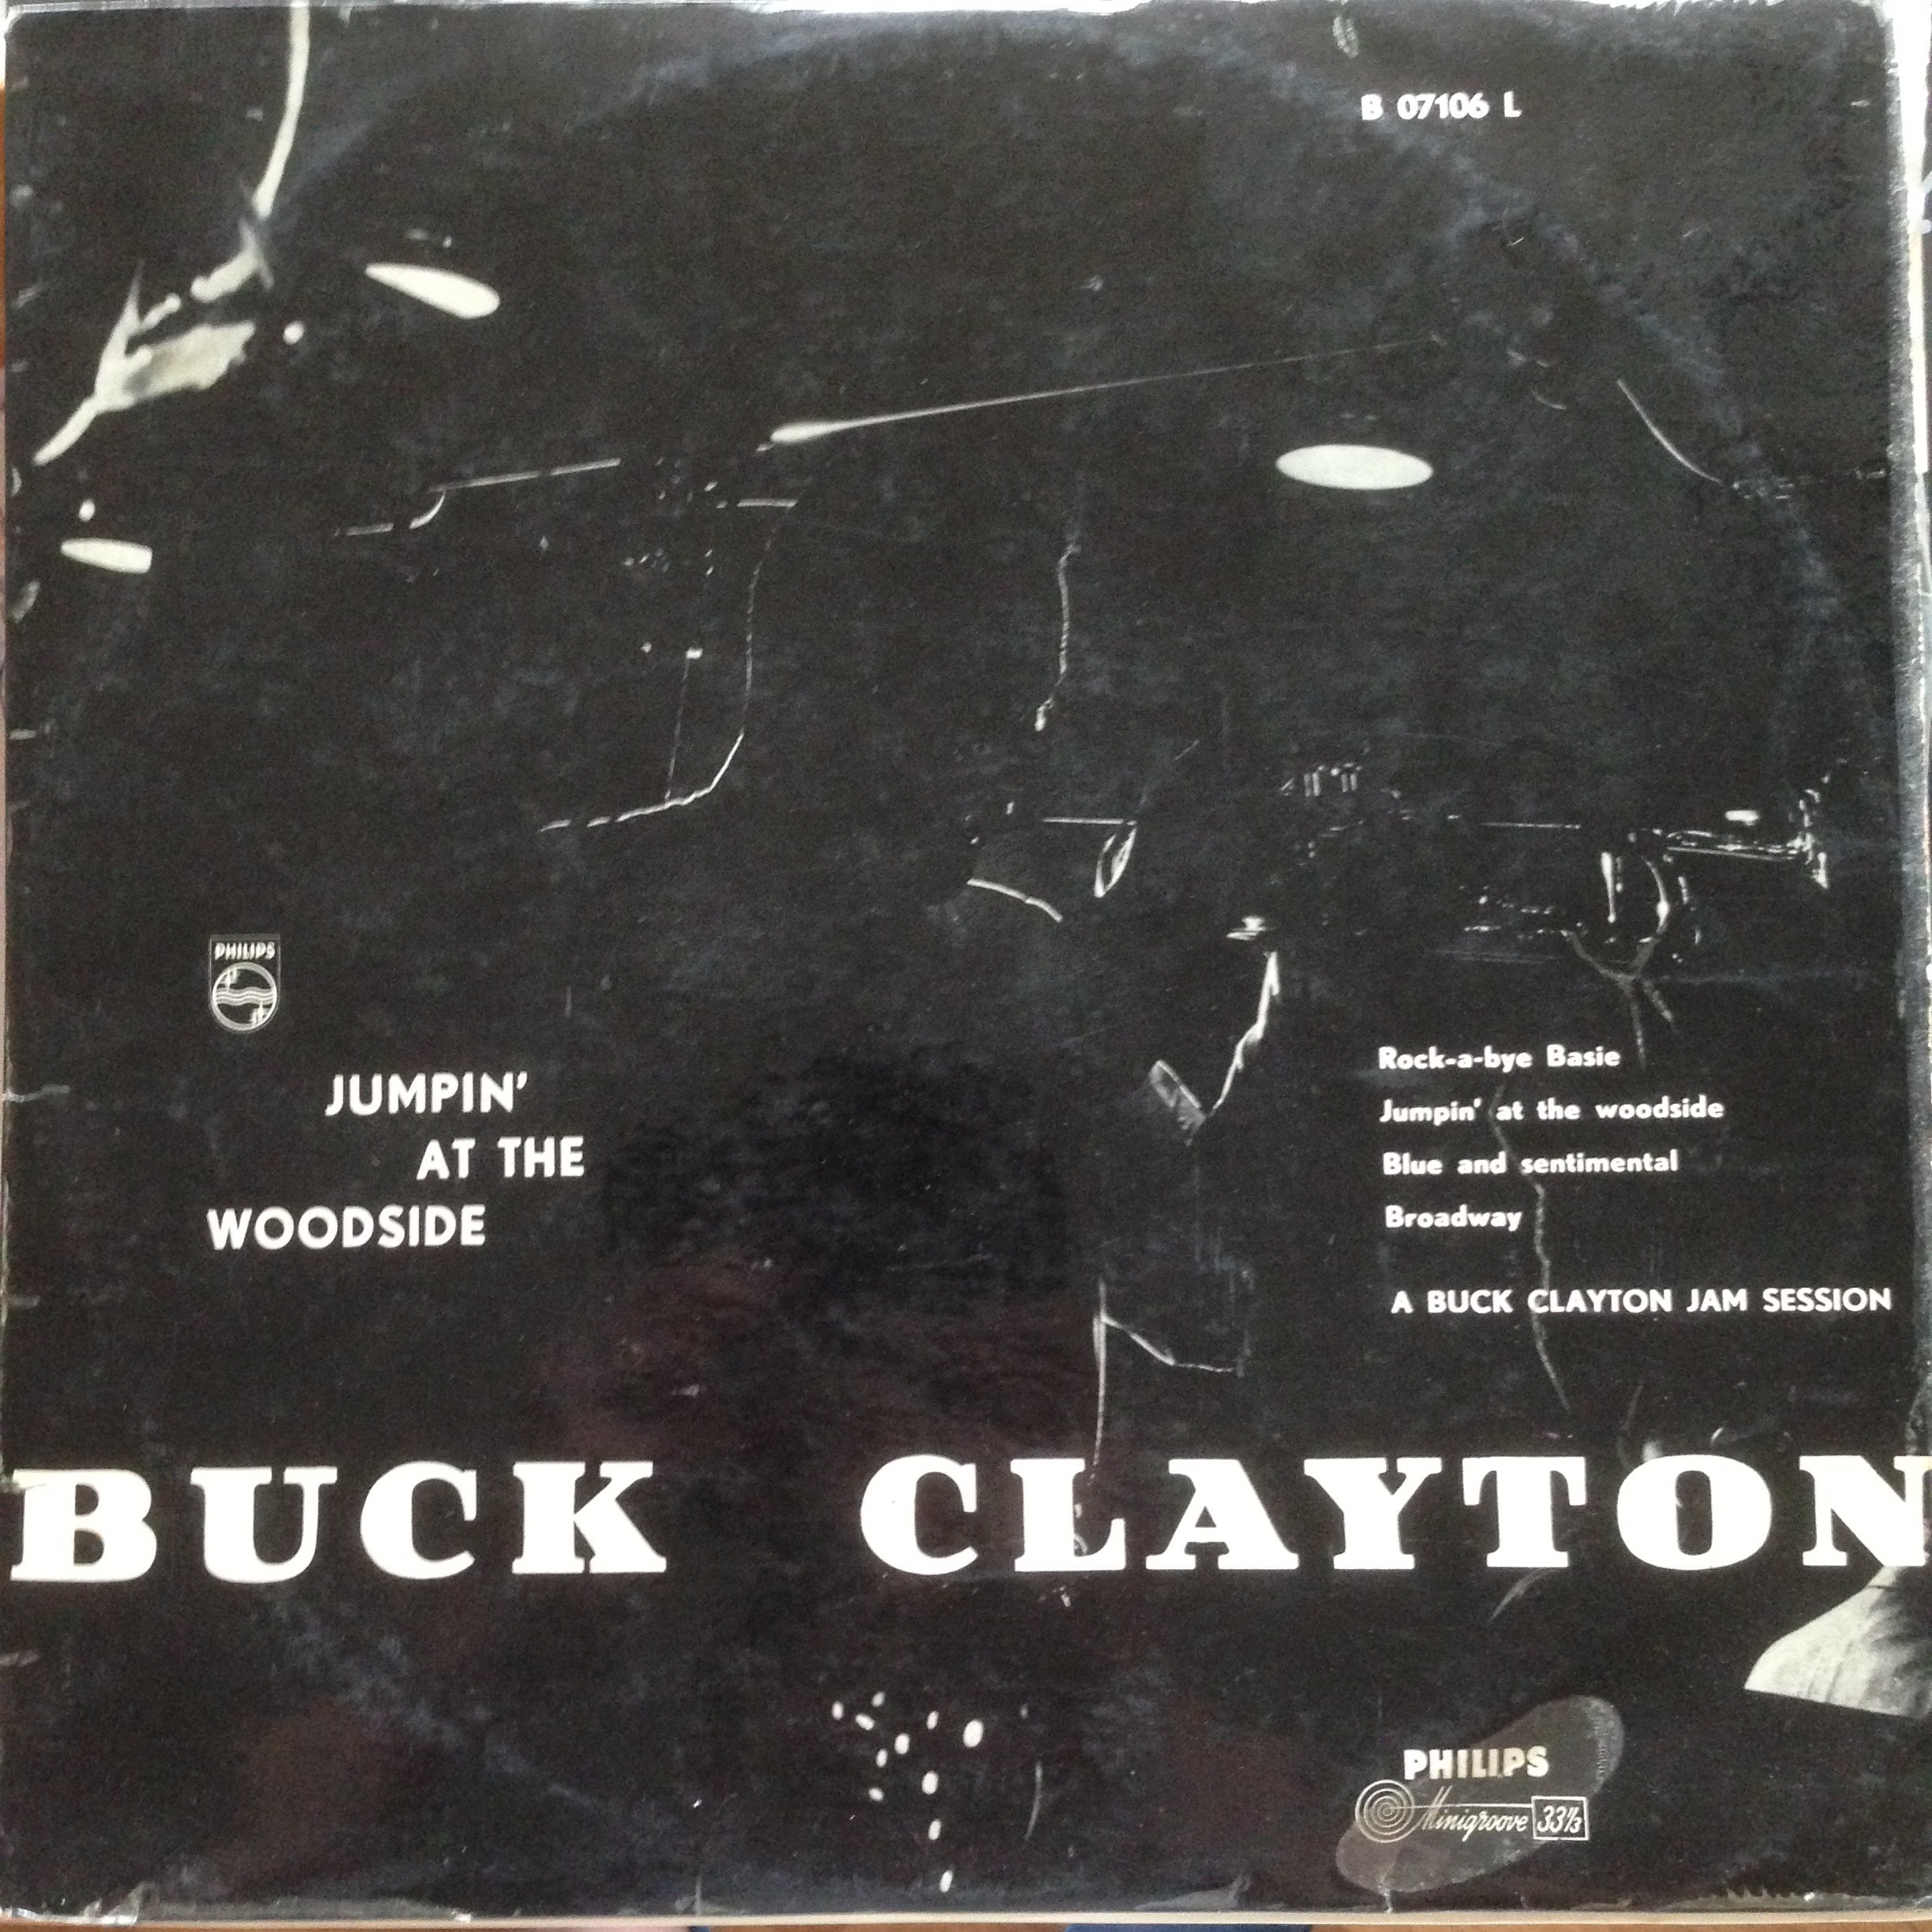 jaquettes4/Buck-Clayton_Jumpin-At-The-Woodside.jpg